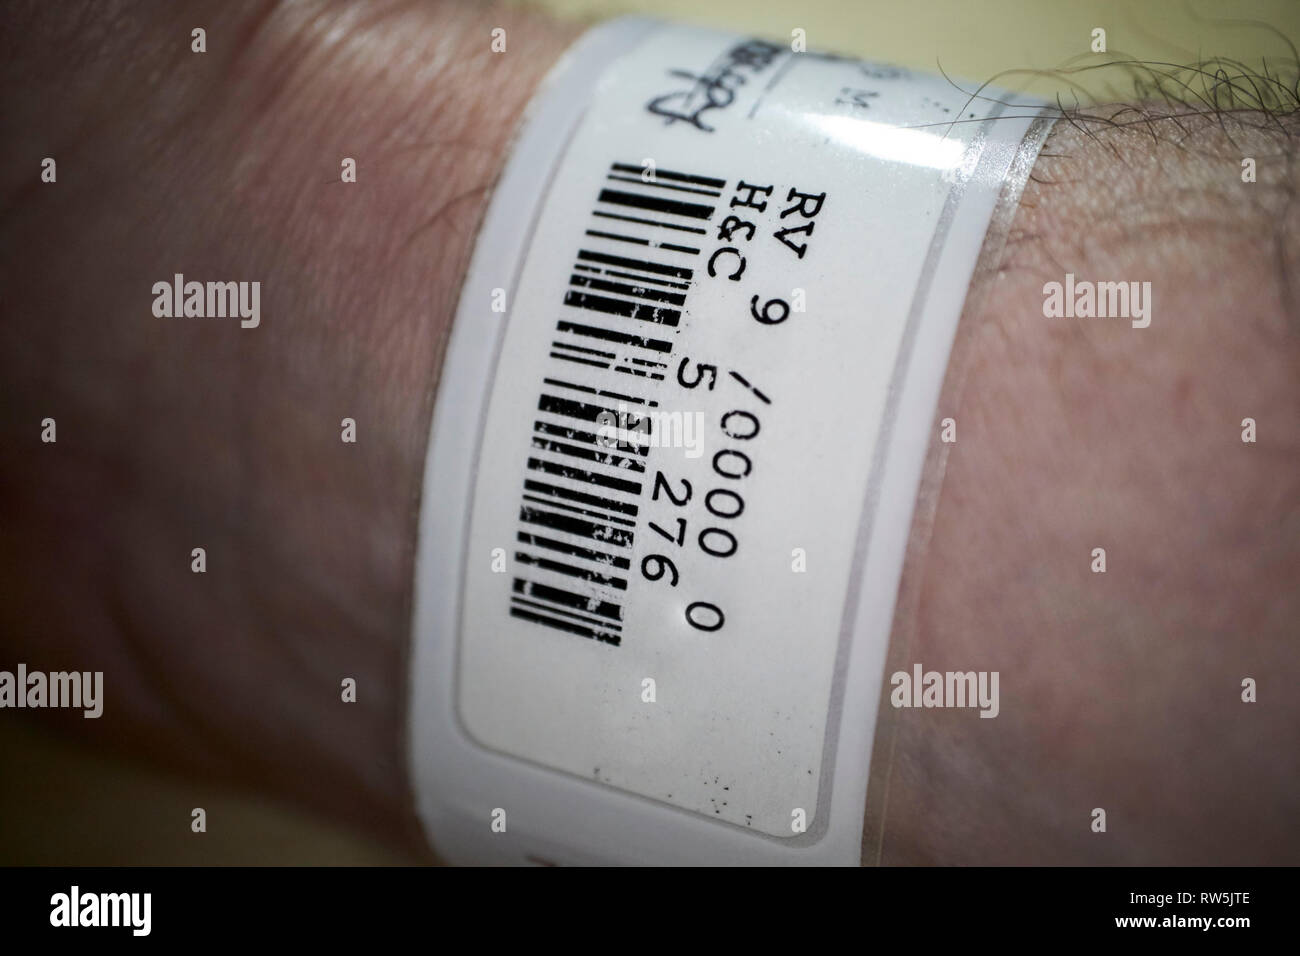 patient wrist label bracelet admission label and barcode in hospital - Stock Image